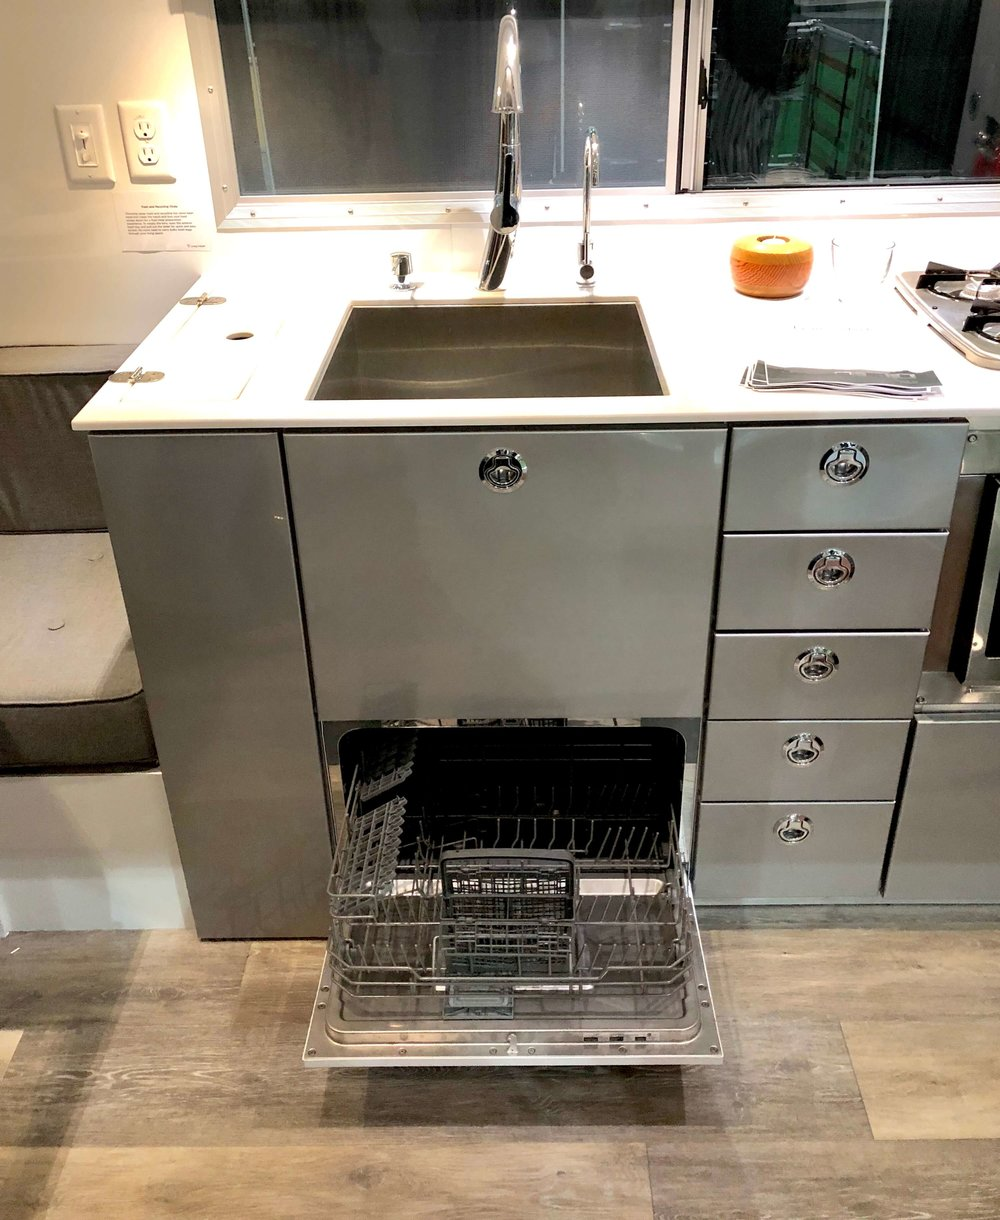 Look at this cute little dishwasher in the kitchen of this mobile home! This might make me love camping again. #glamping #camping #rv #tinyhouse